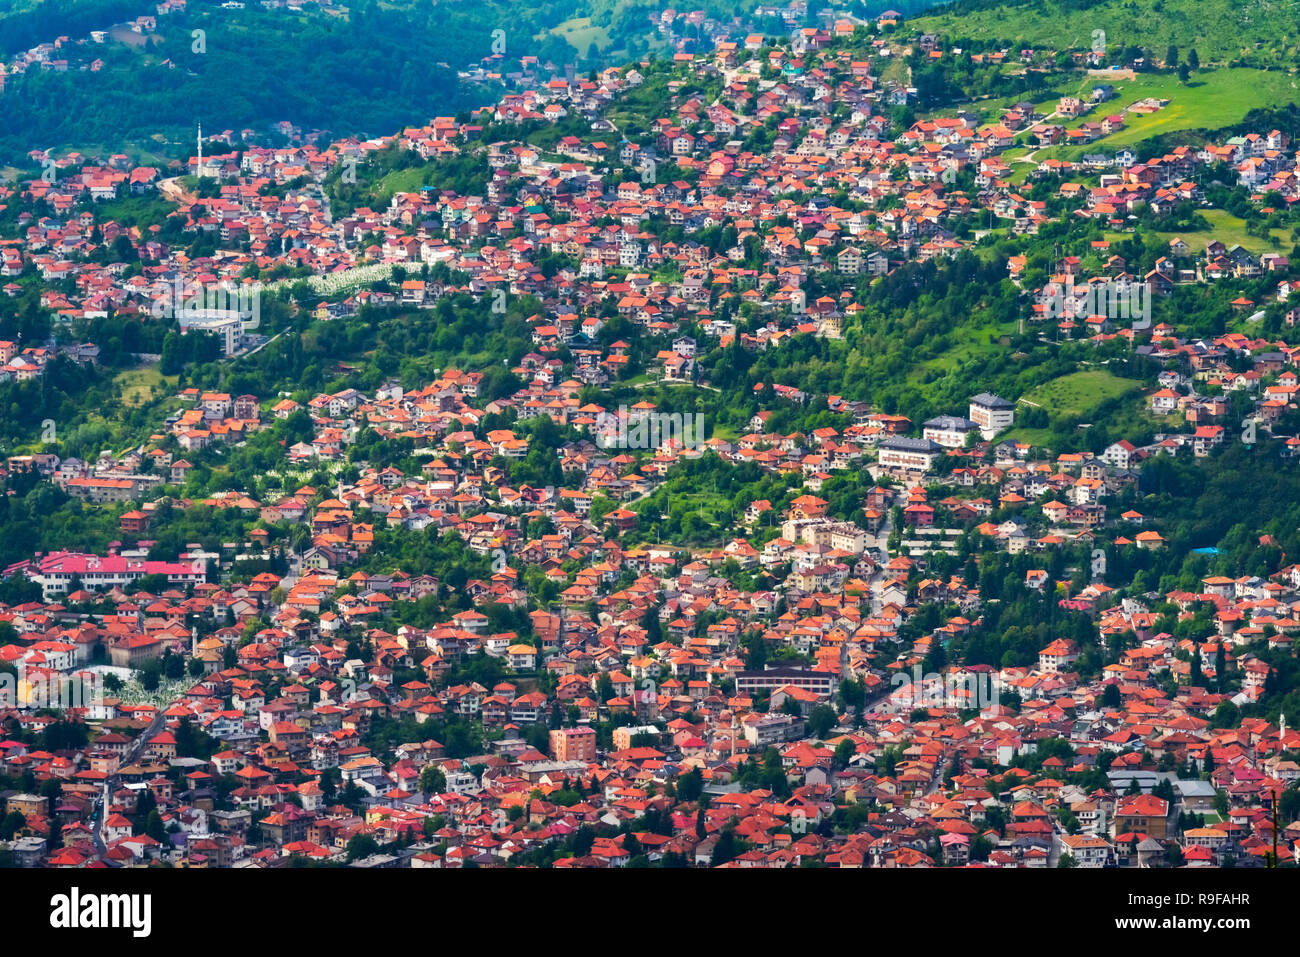 Cityscape of Sarajevo, Bosnia and Herzegovina - Stock Image